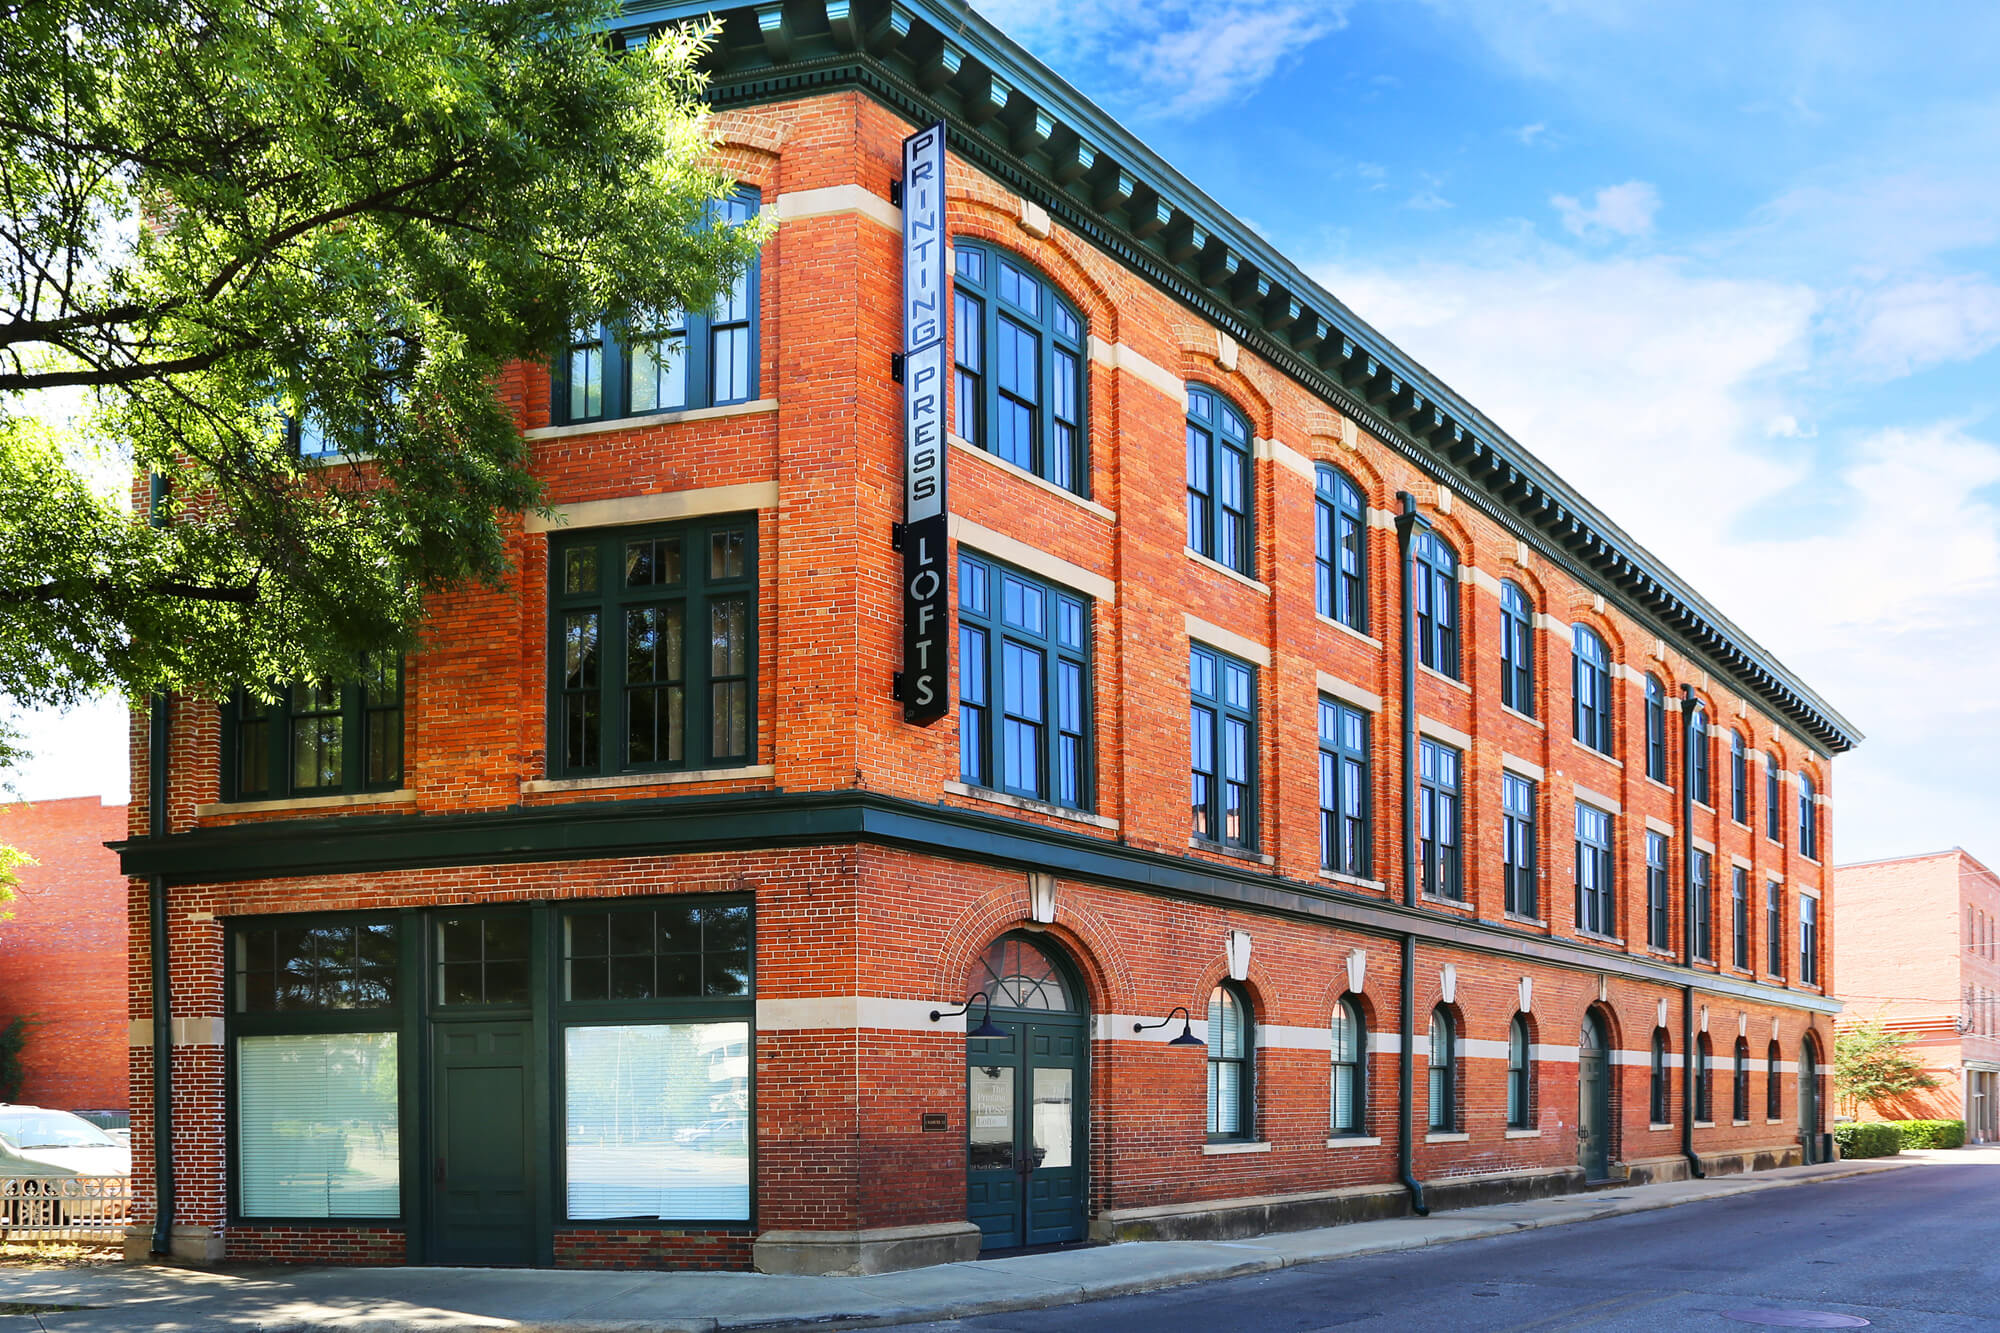 Printing Press Lofts Designed by Foshee Architecture - View of the Exterior